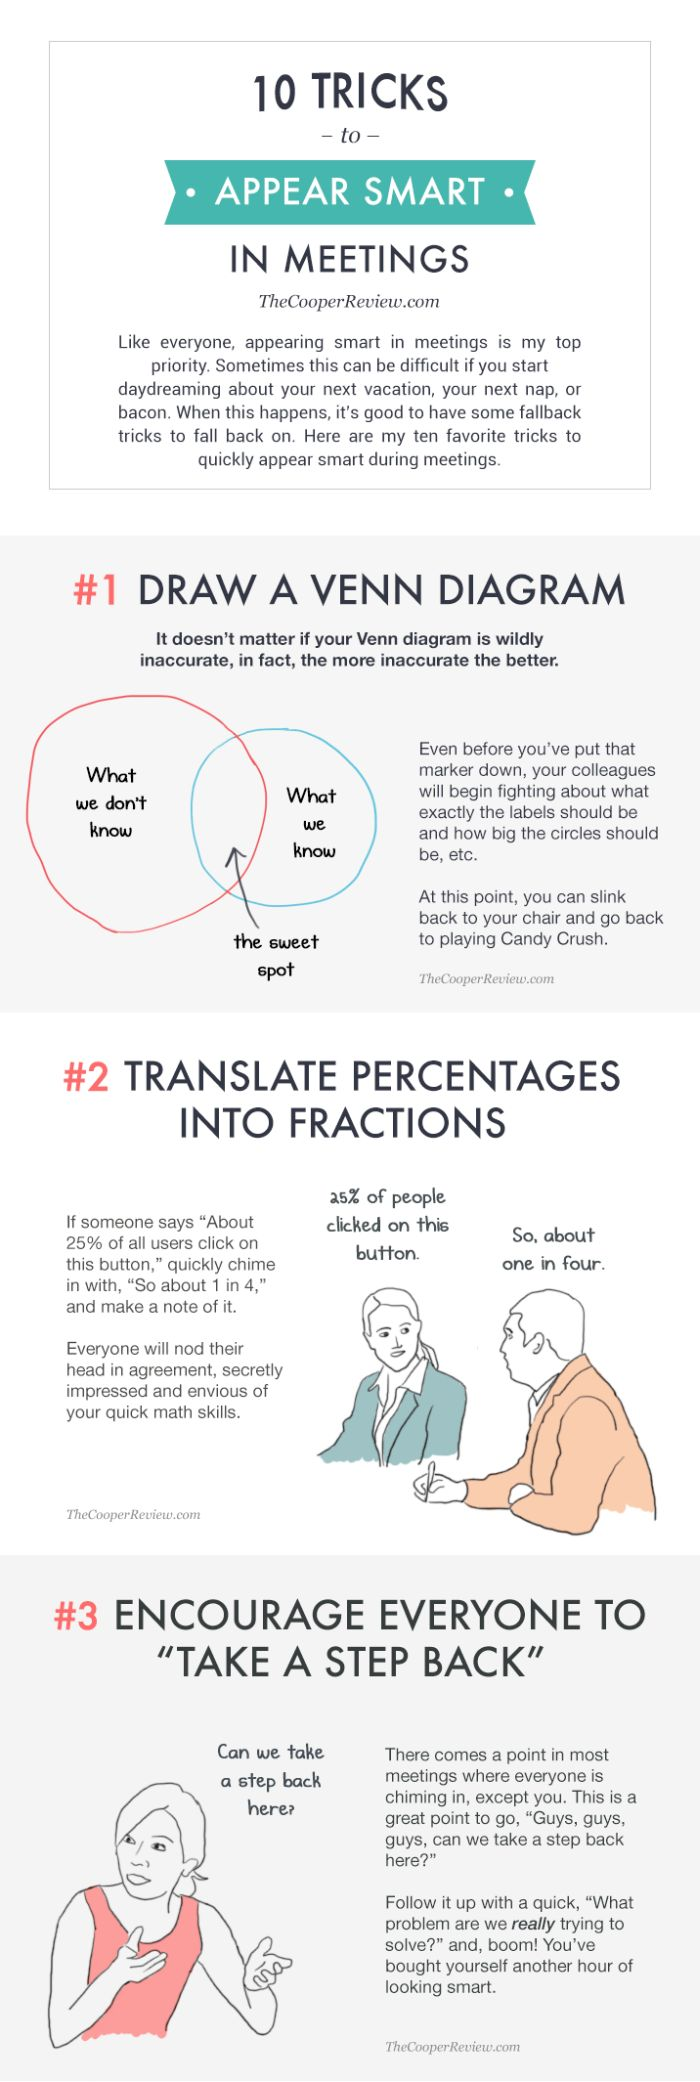 10 Tricks That Will Help You Appear Smart In Meetings (3 pics)